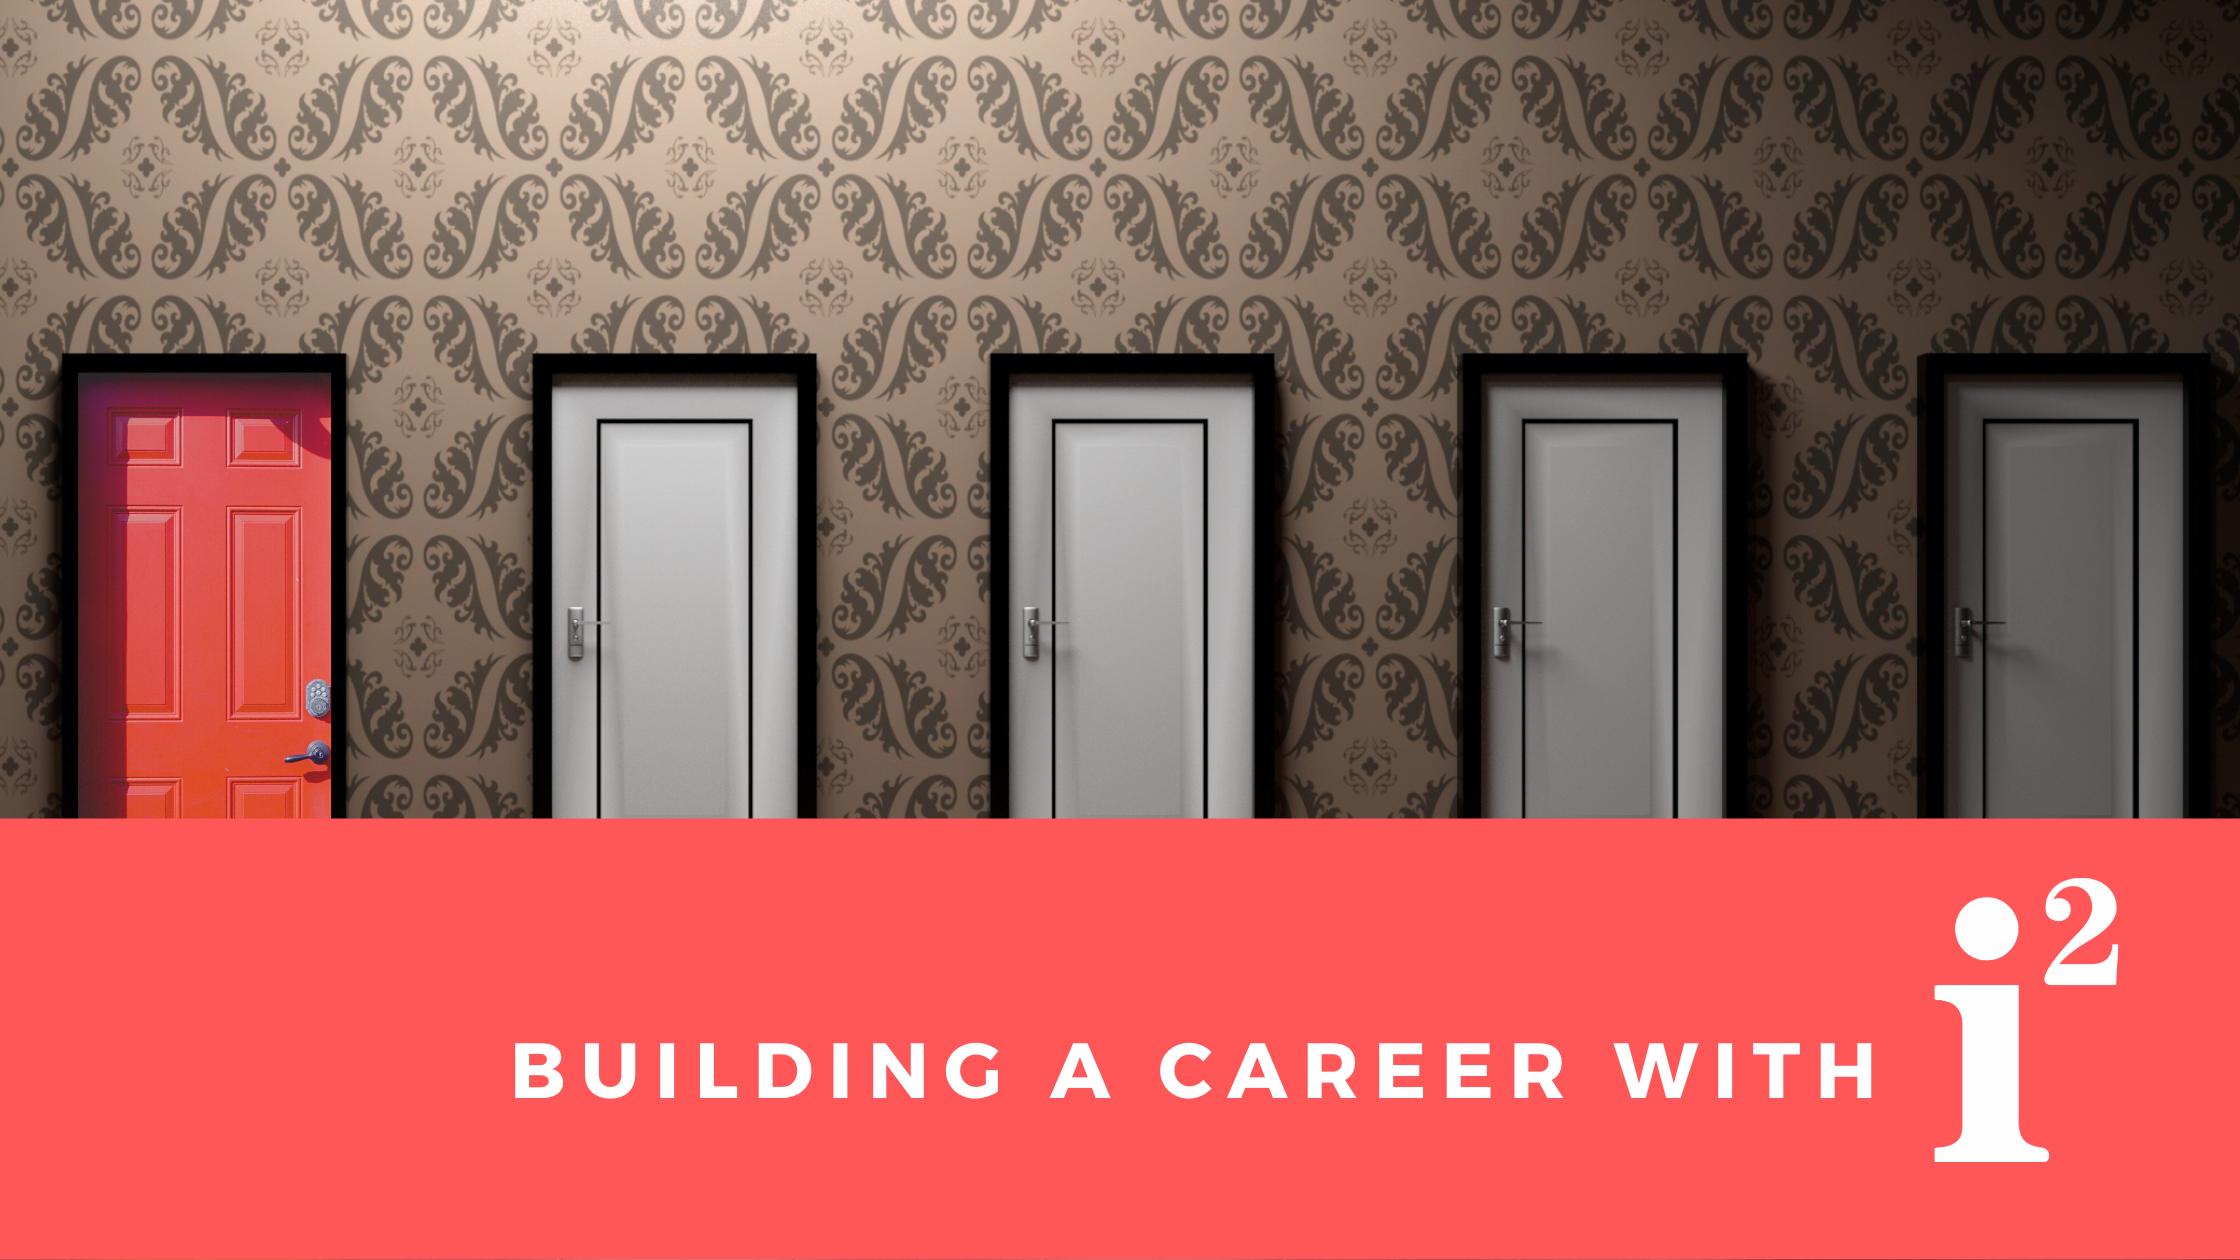 Building a career with i2